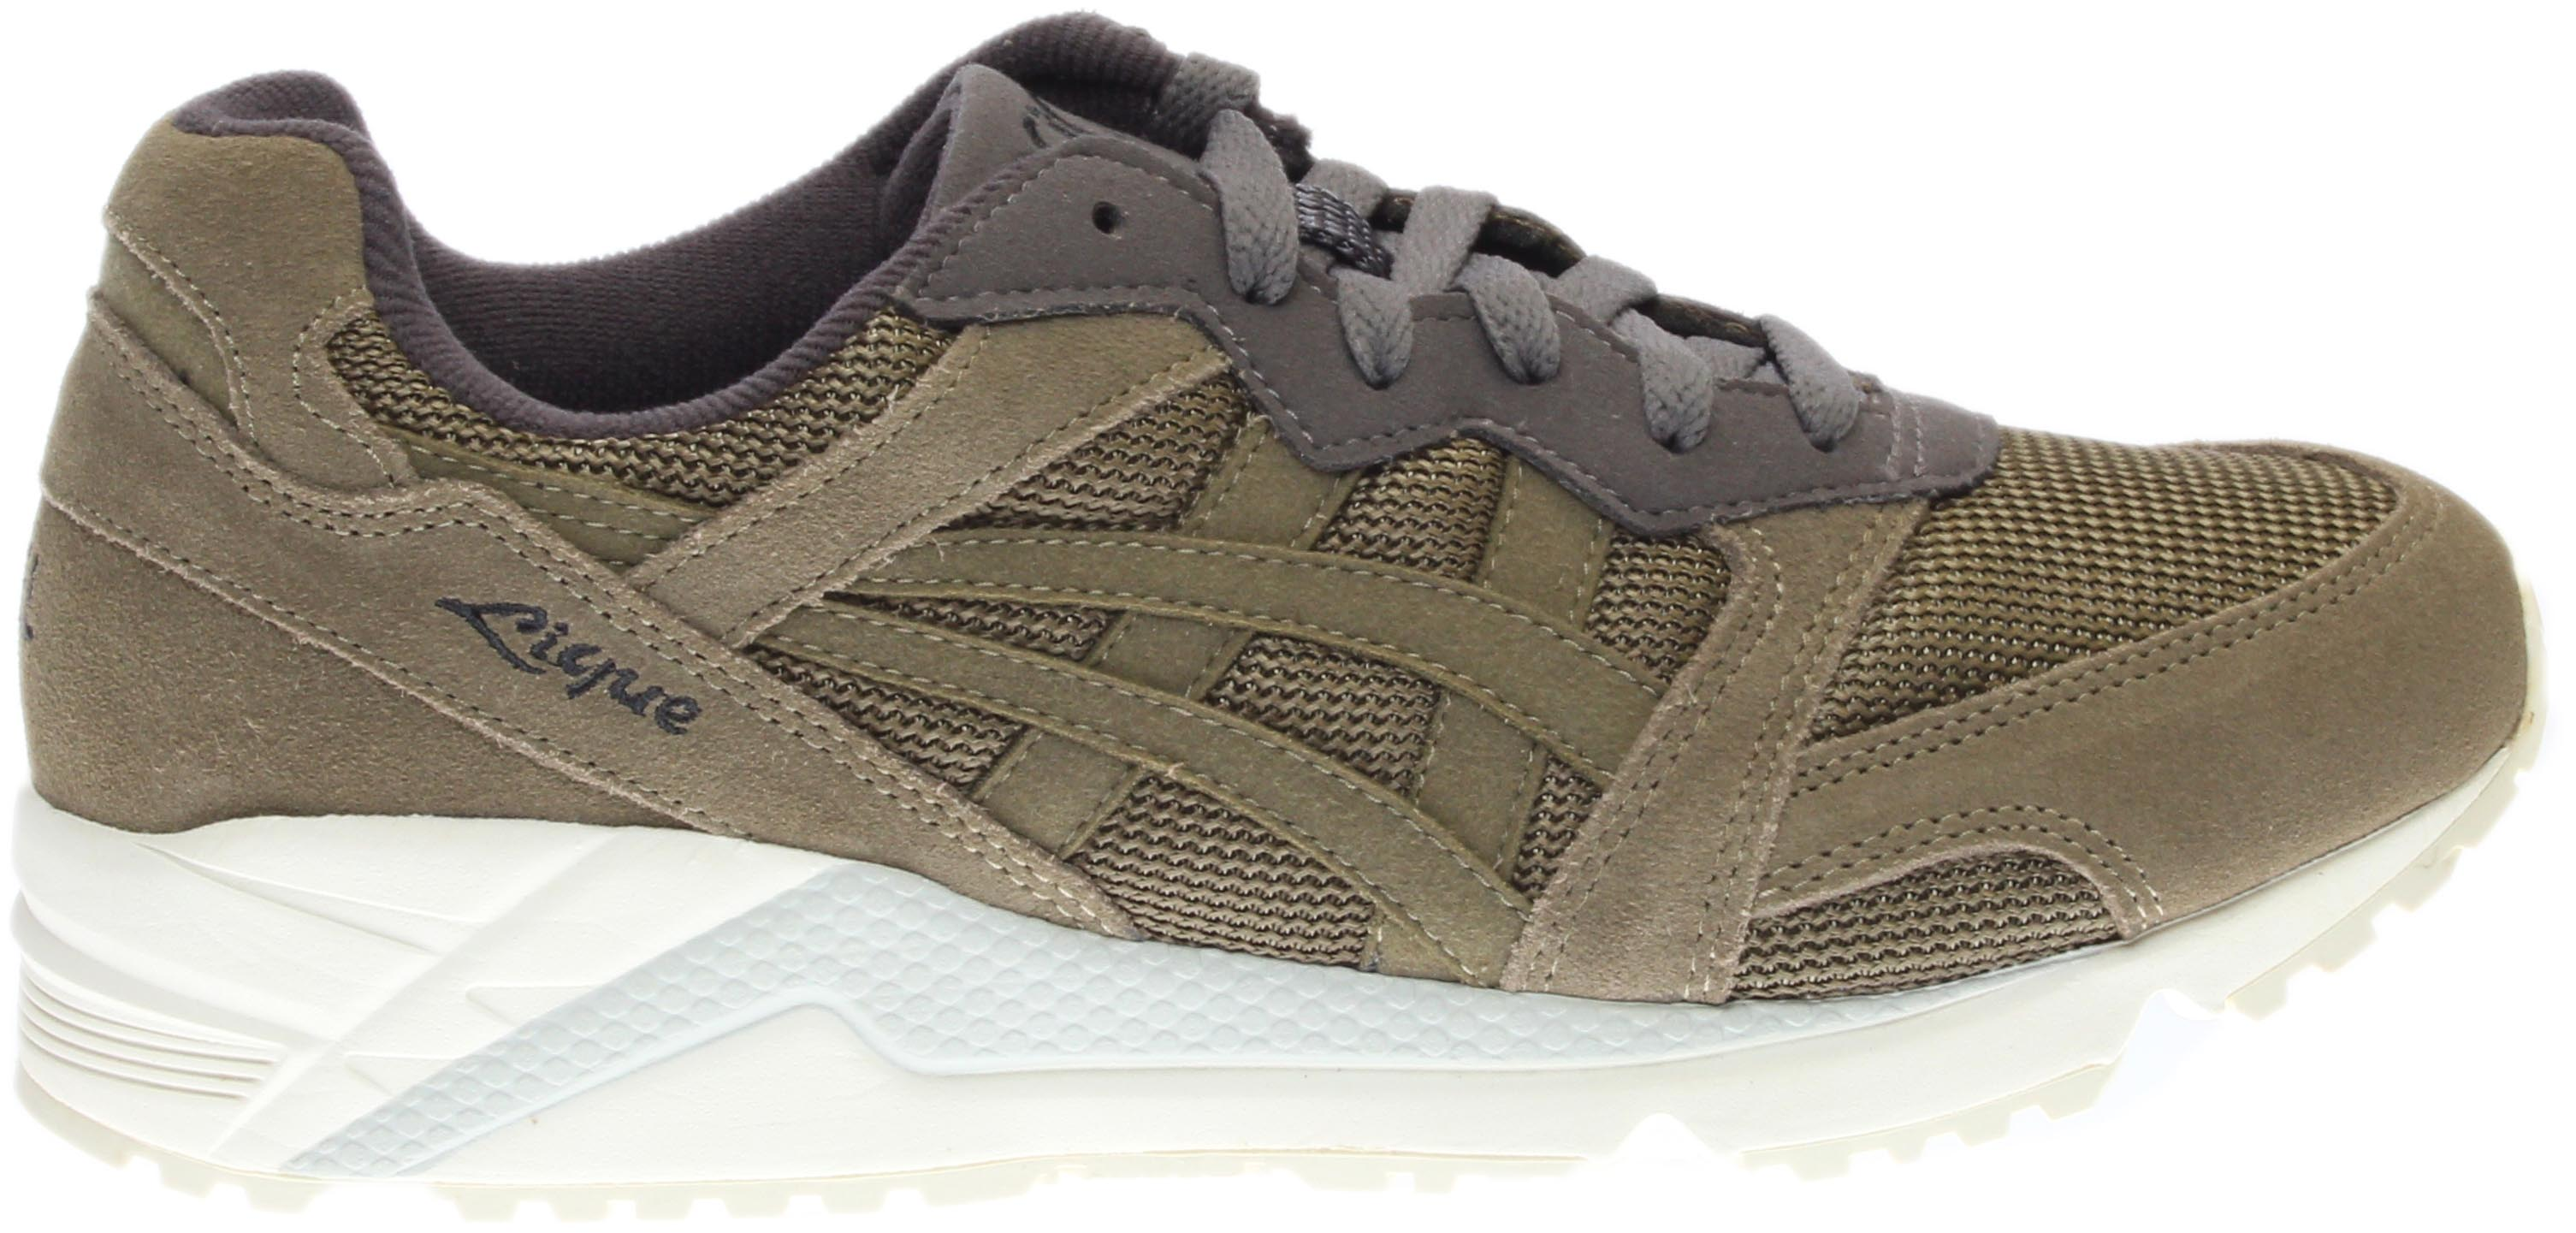 promo code 341fa 70375 Details about ASICS GEL-Lique - Green - Mens